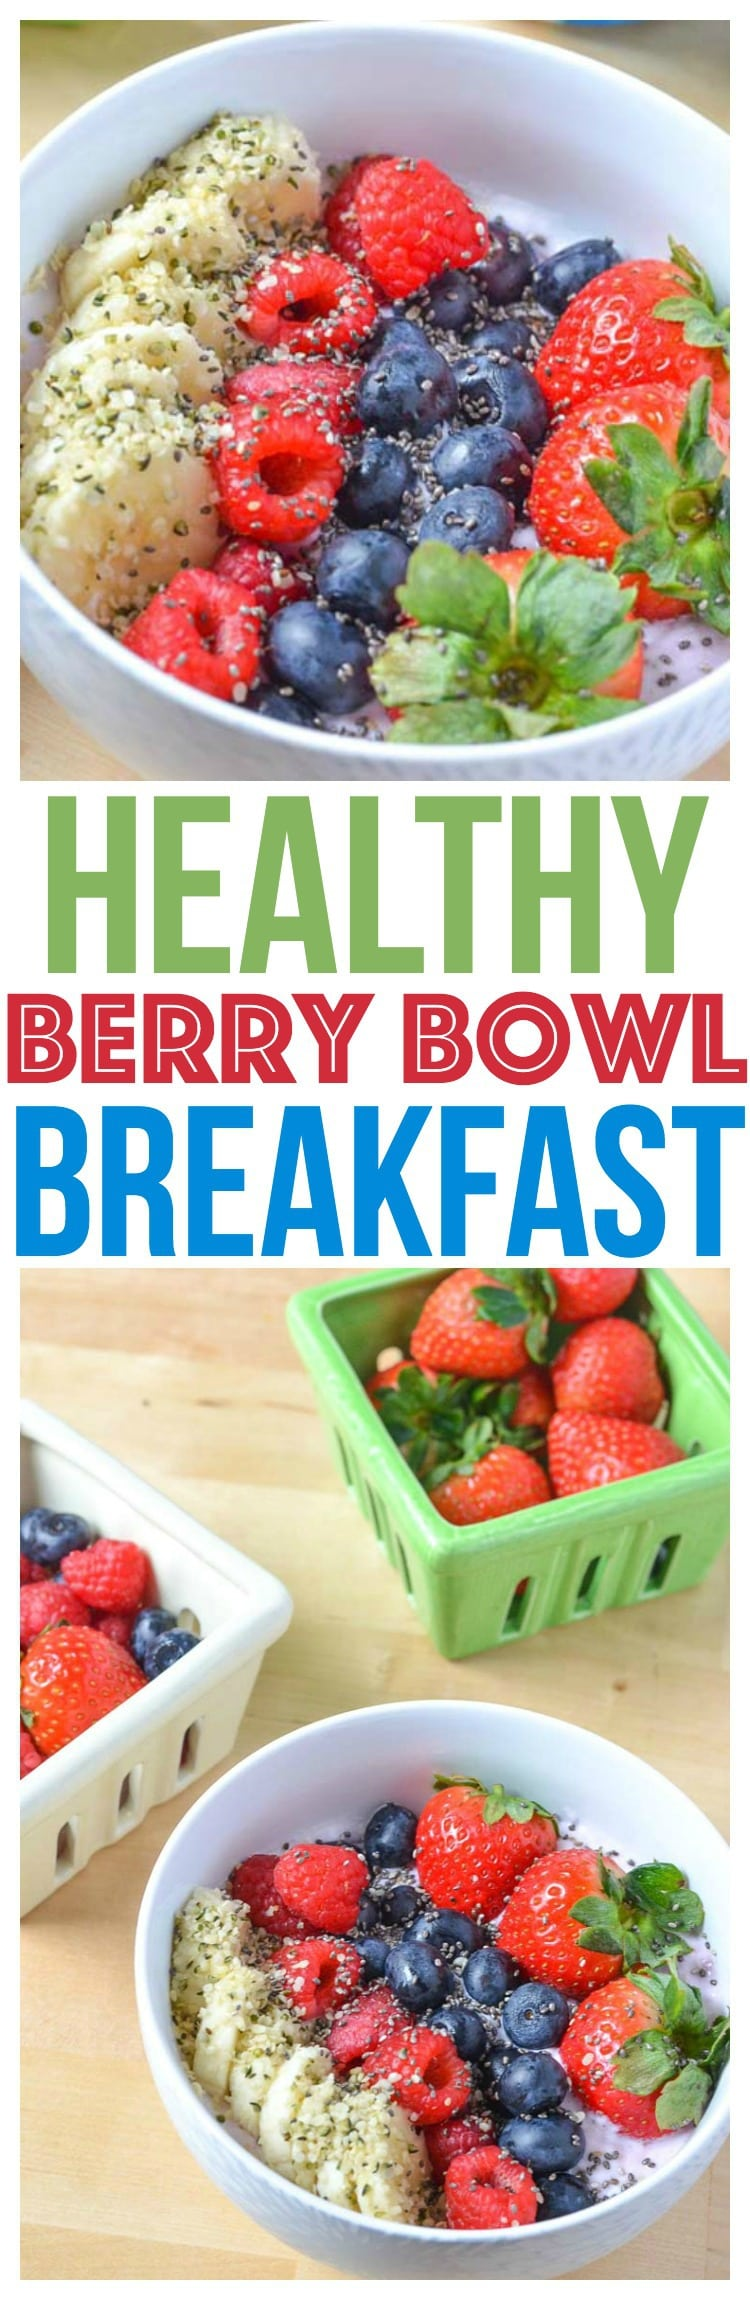 breakfasts bowls healthy recipe yogurt breakfast